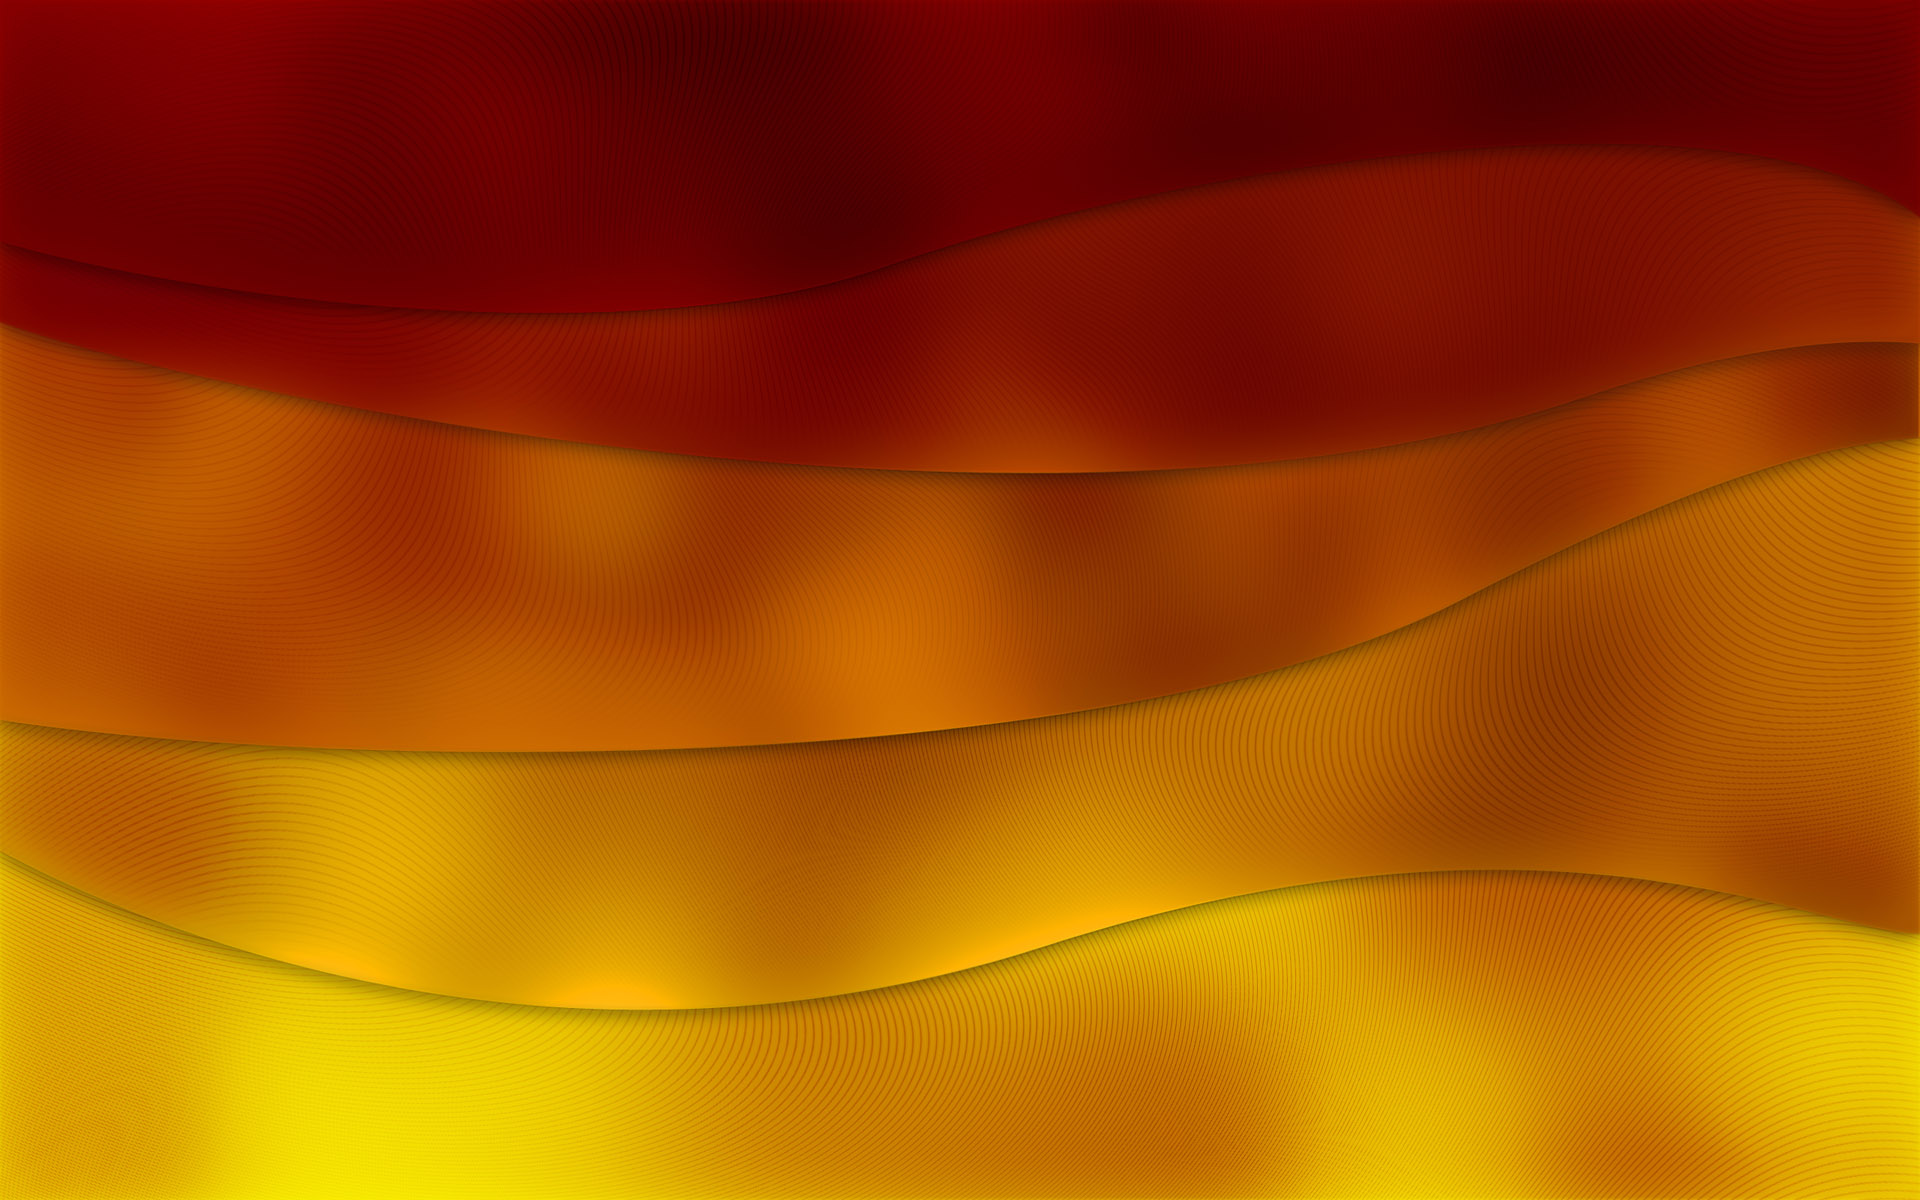 HD color background wallpaper 19344